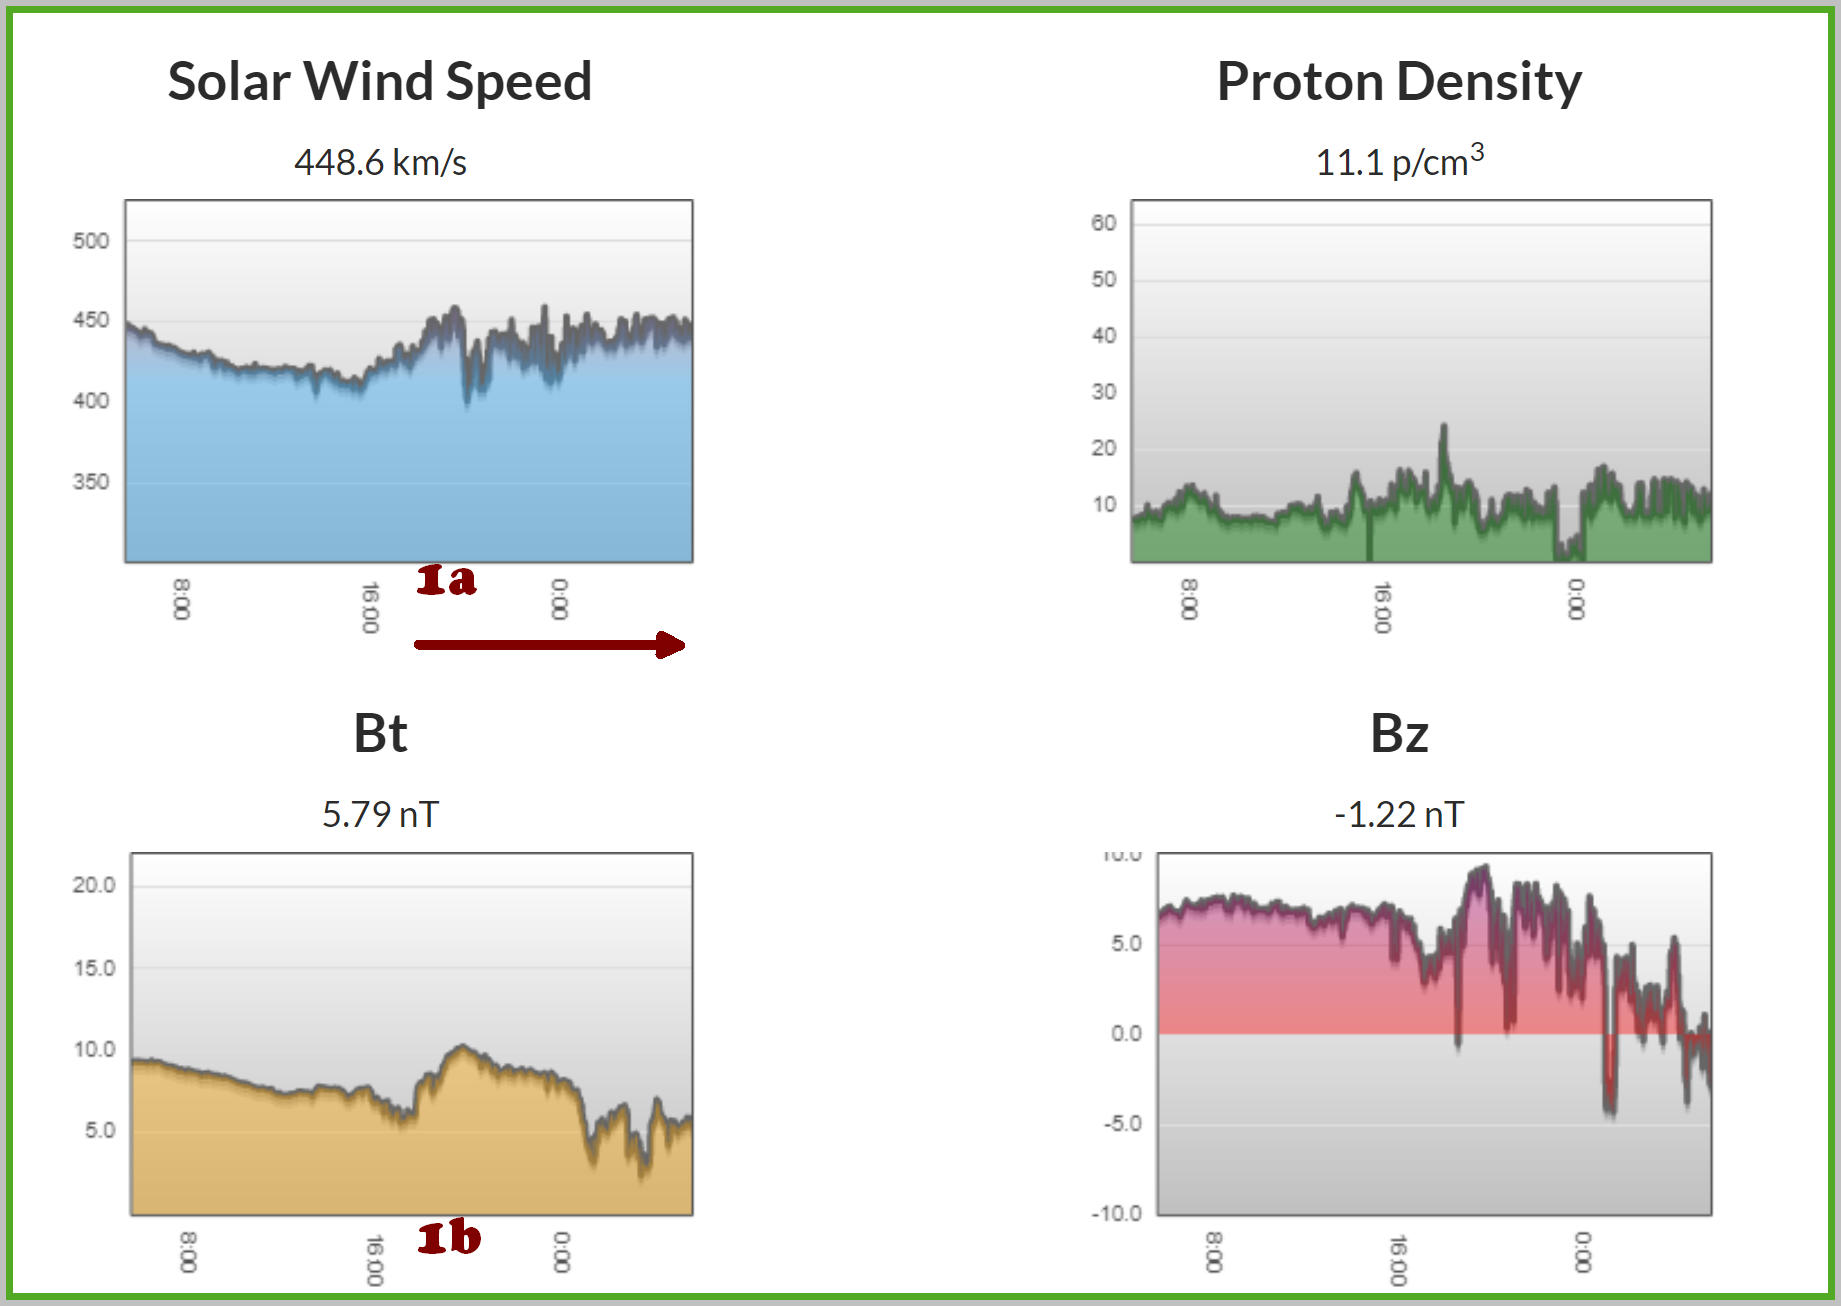 Solar wind data from the last 24 hours shows the first CME transient arriving around 16:20 on 5/15